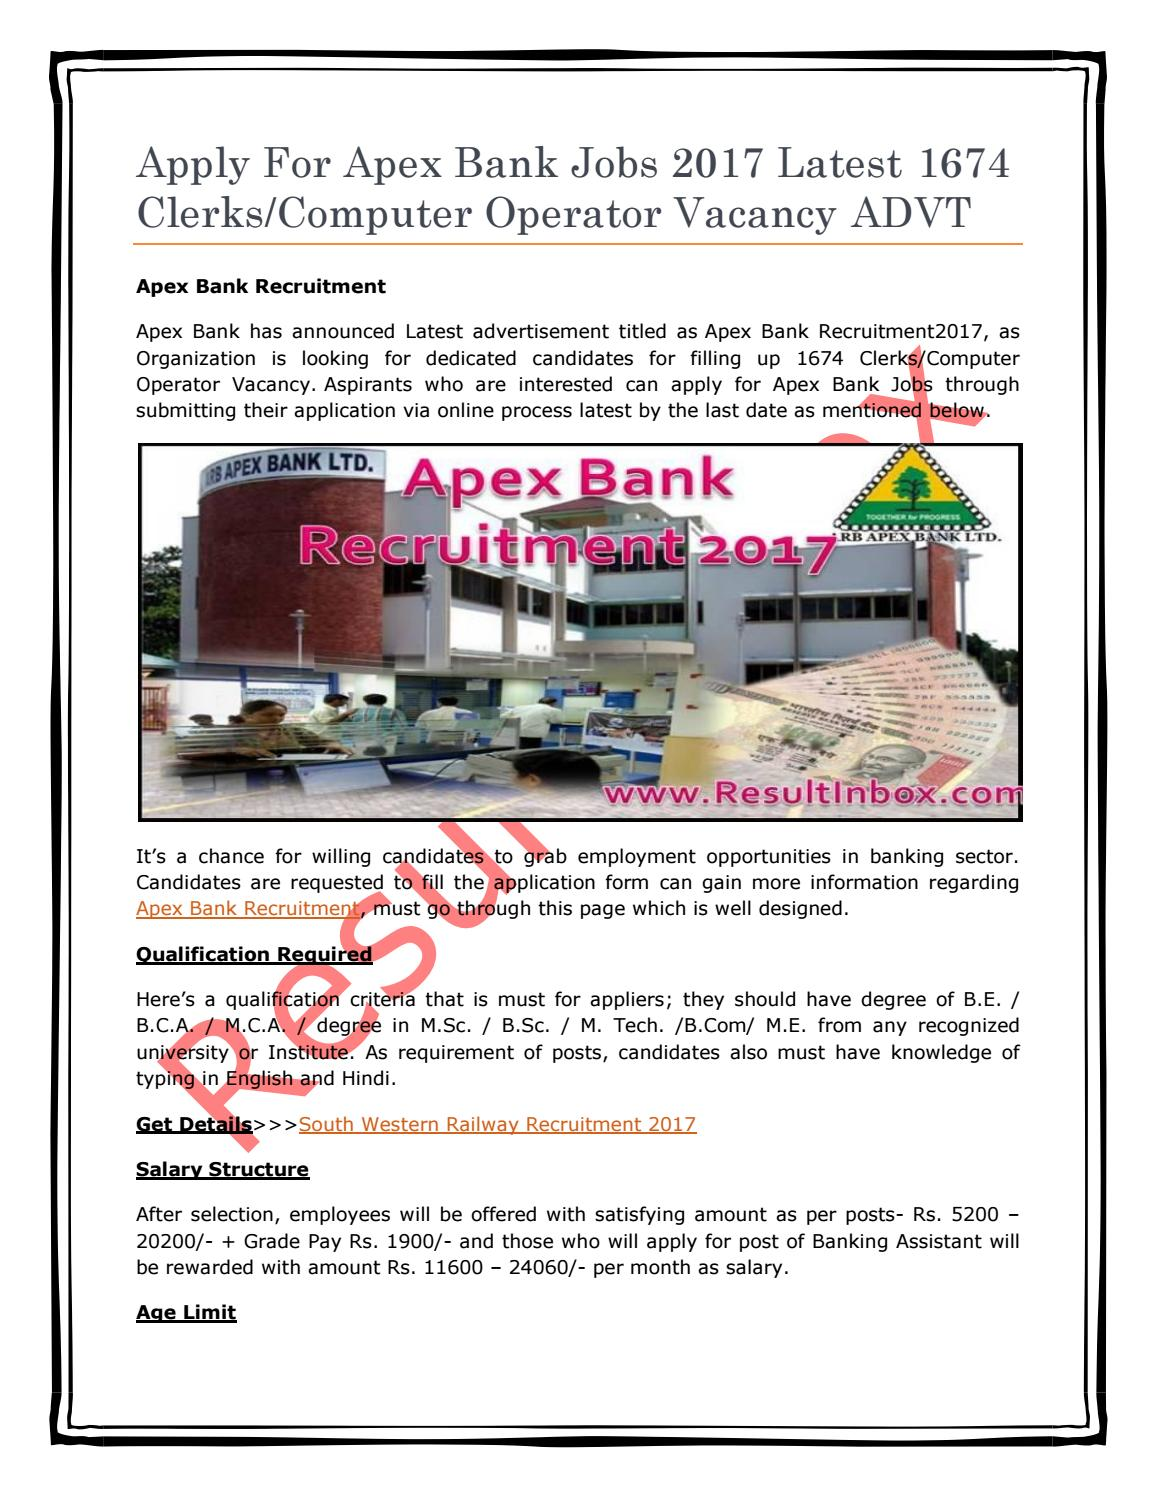 Apply for apex bank jobs 2017 latest 1674 clerks computer operator